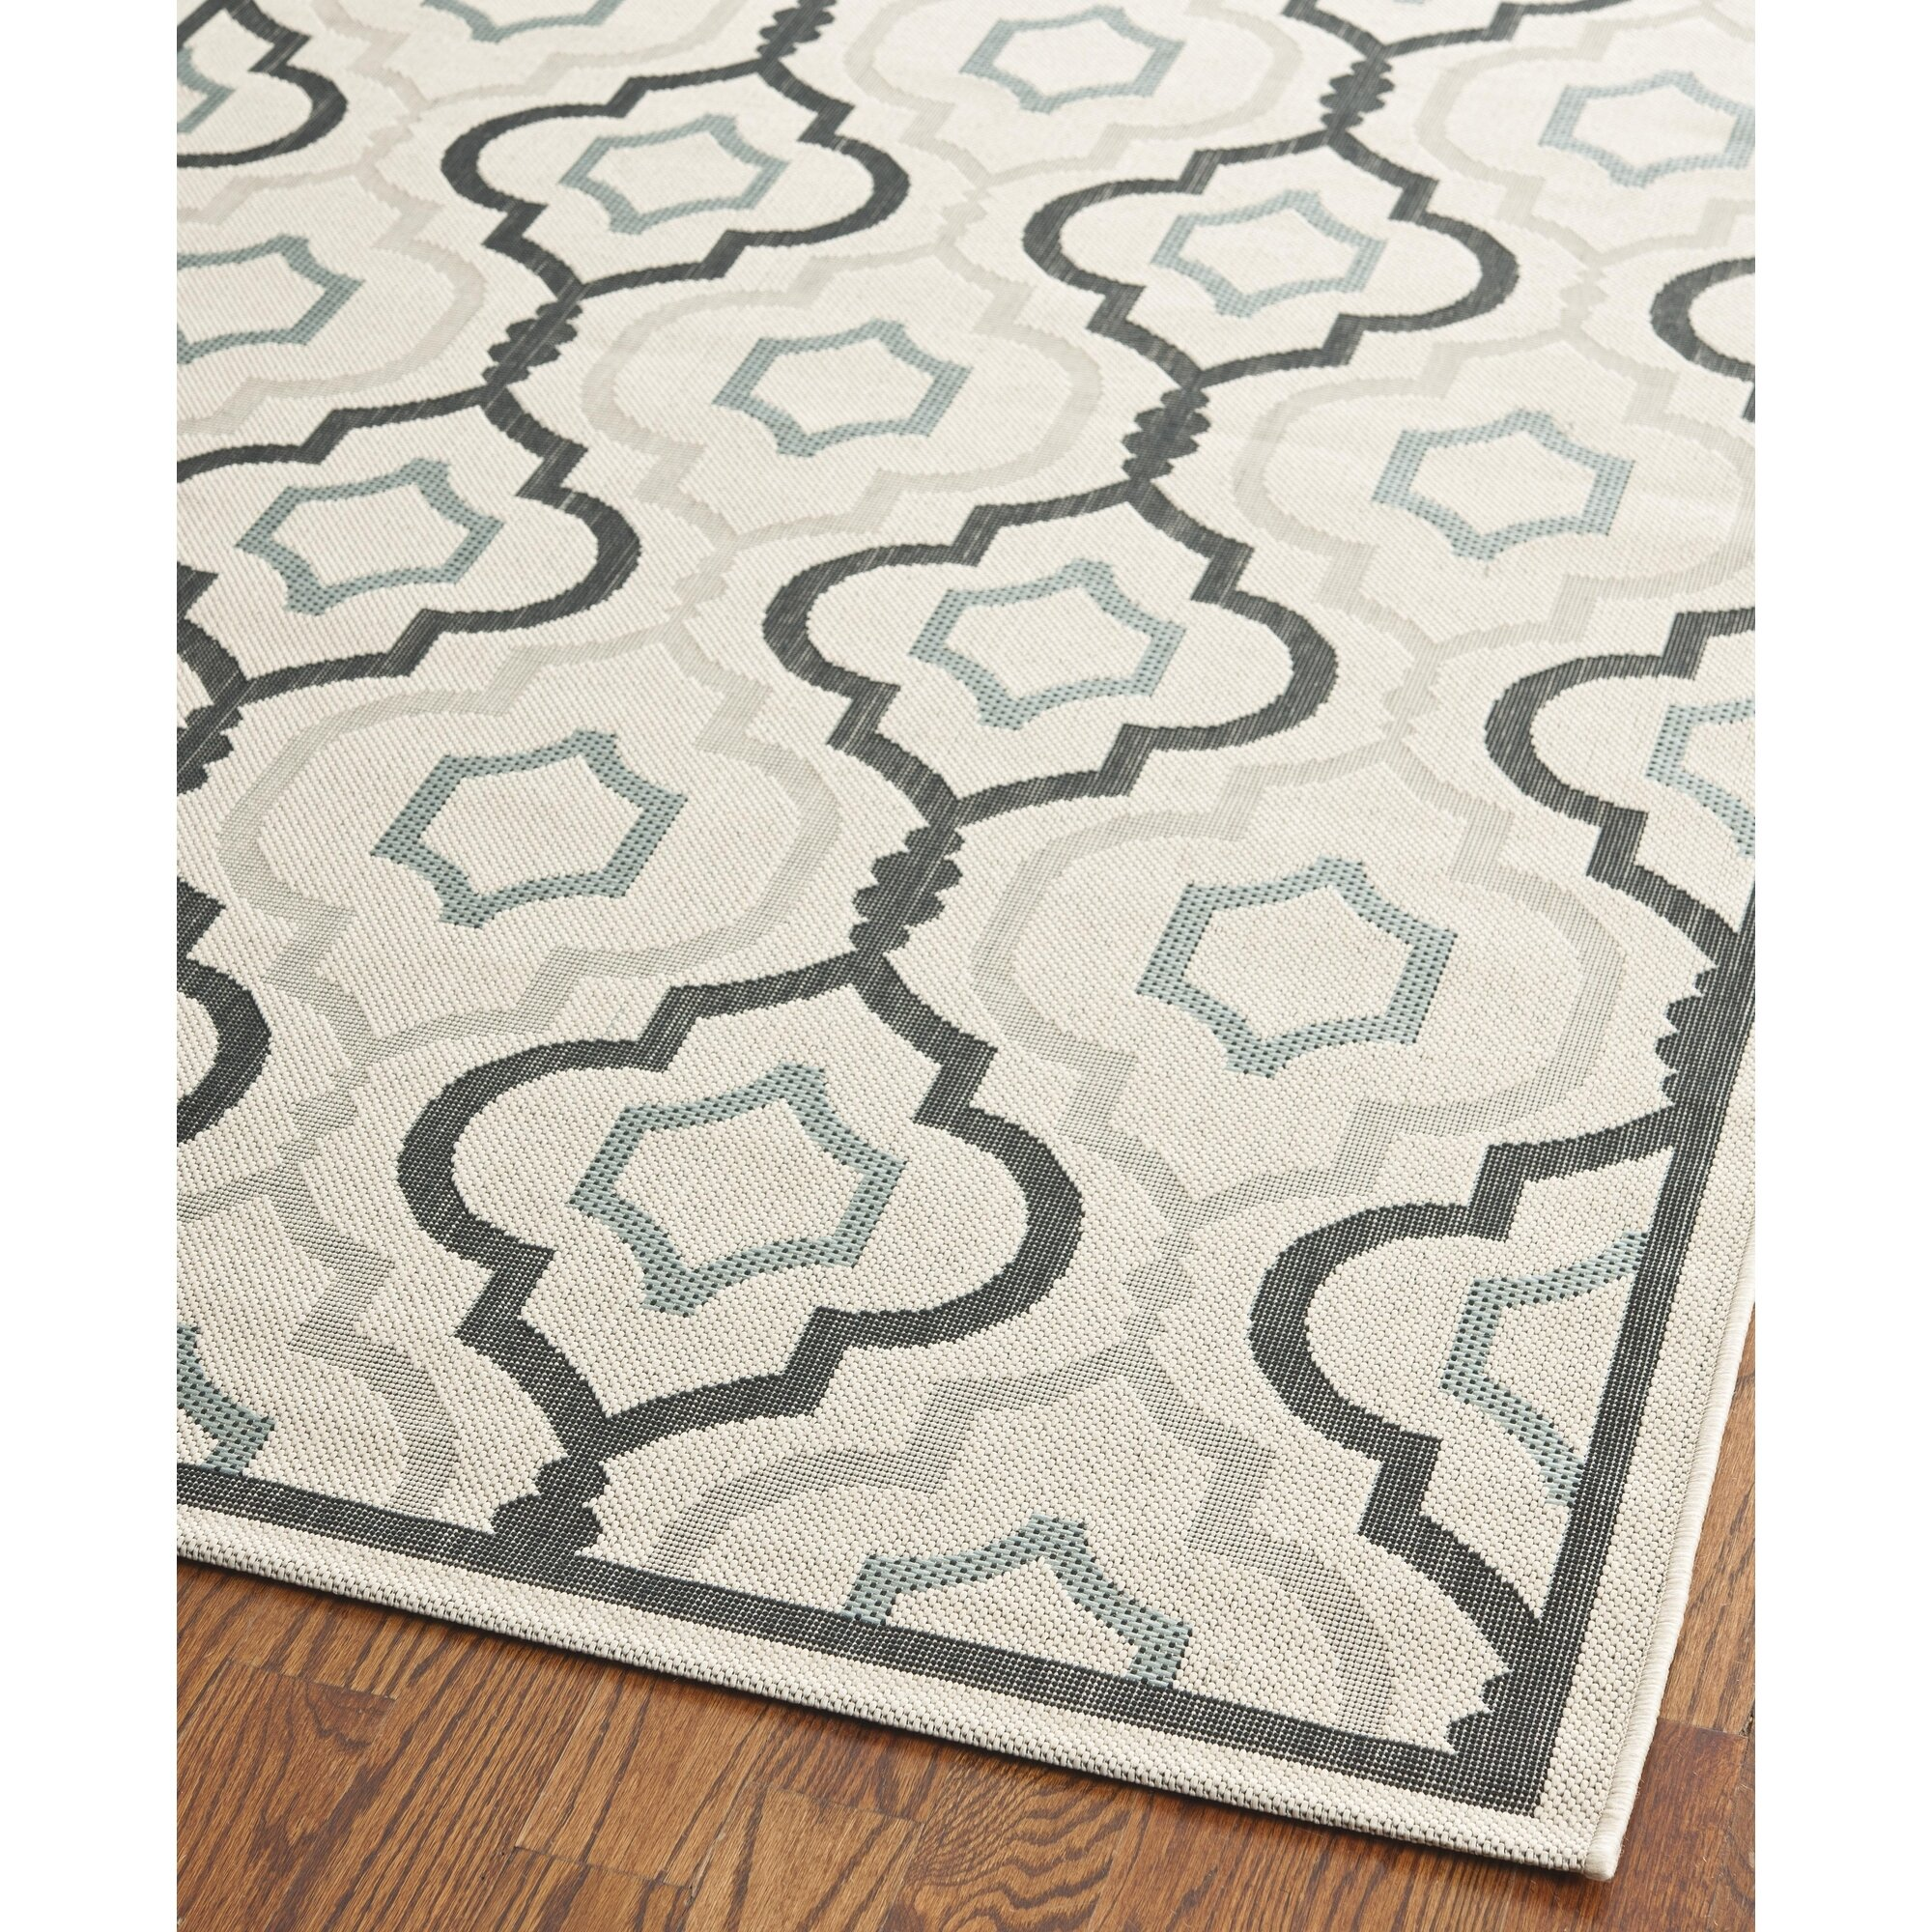 Safavieh Courtyard Digitas Beige Indoor Outdoor Area Rug